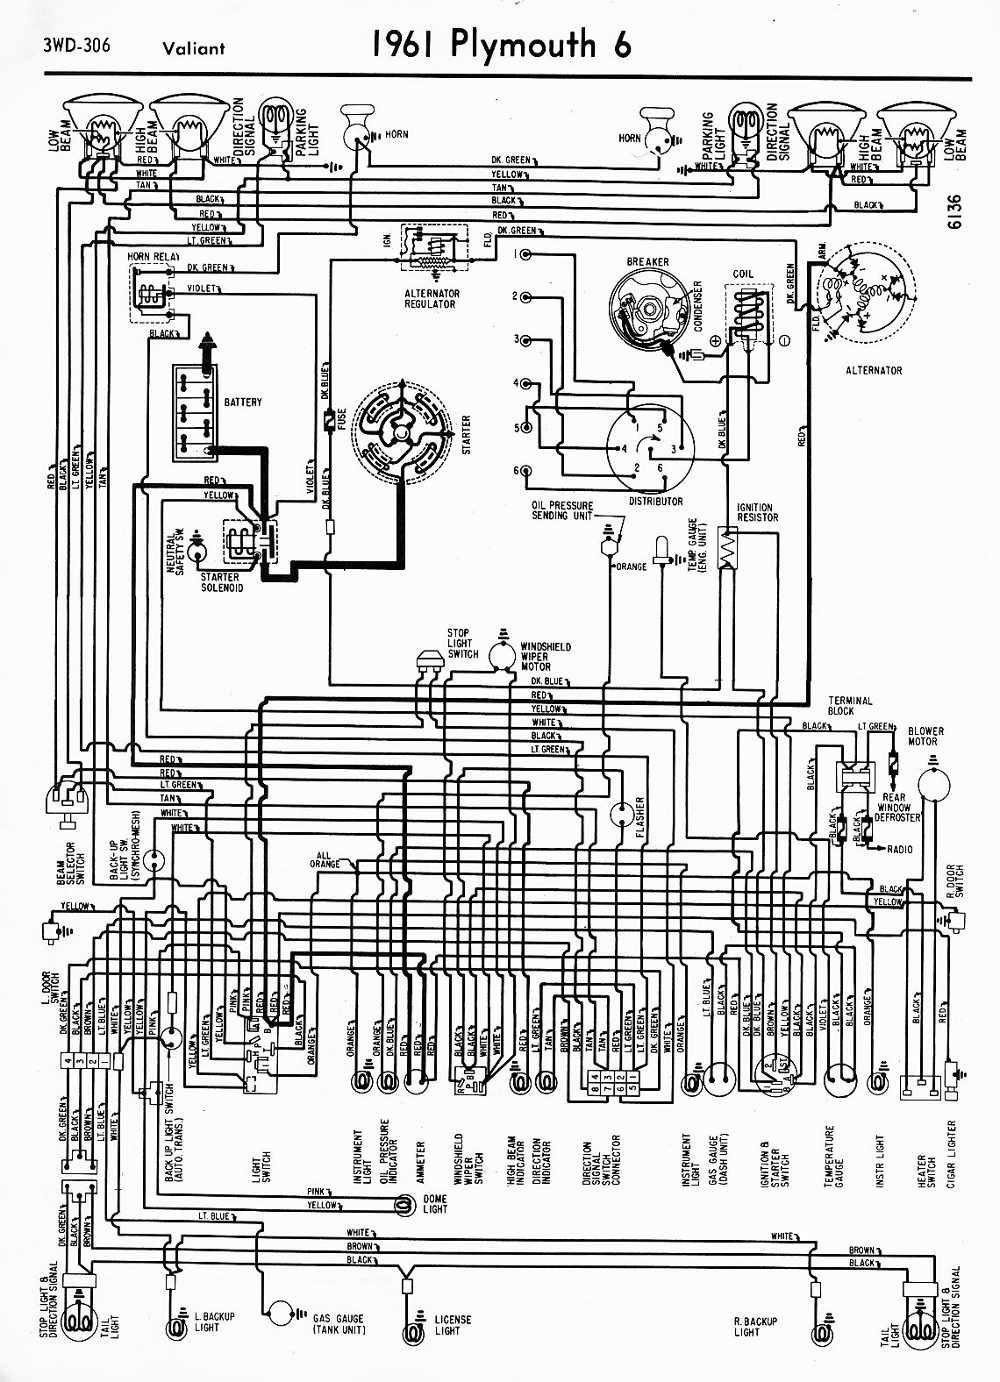 wiring diagrams of 1961 plymouth 6 valiant?t\\\=1508746019 1955 plymouth wiring diagram 1955 wiring diagrams instruction 1970 dodge coronet wiring diagram at beritabola.co